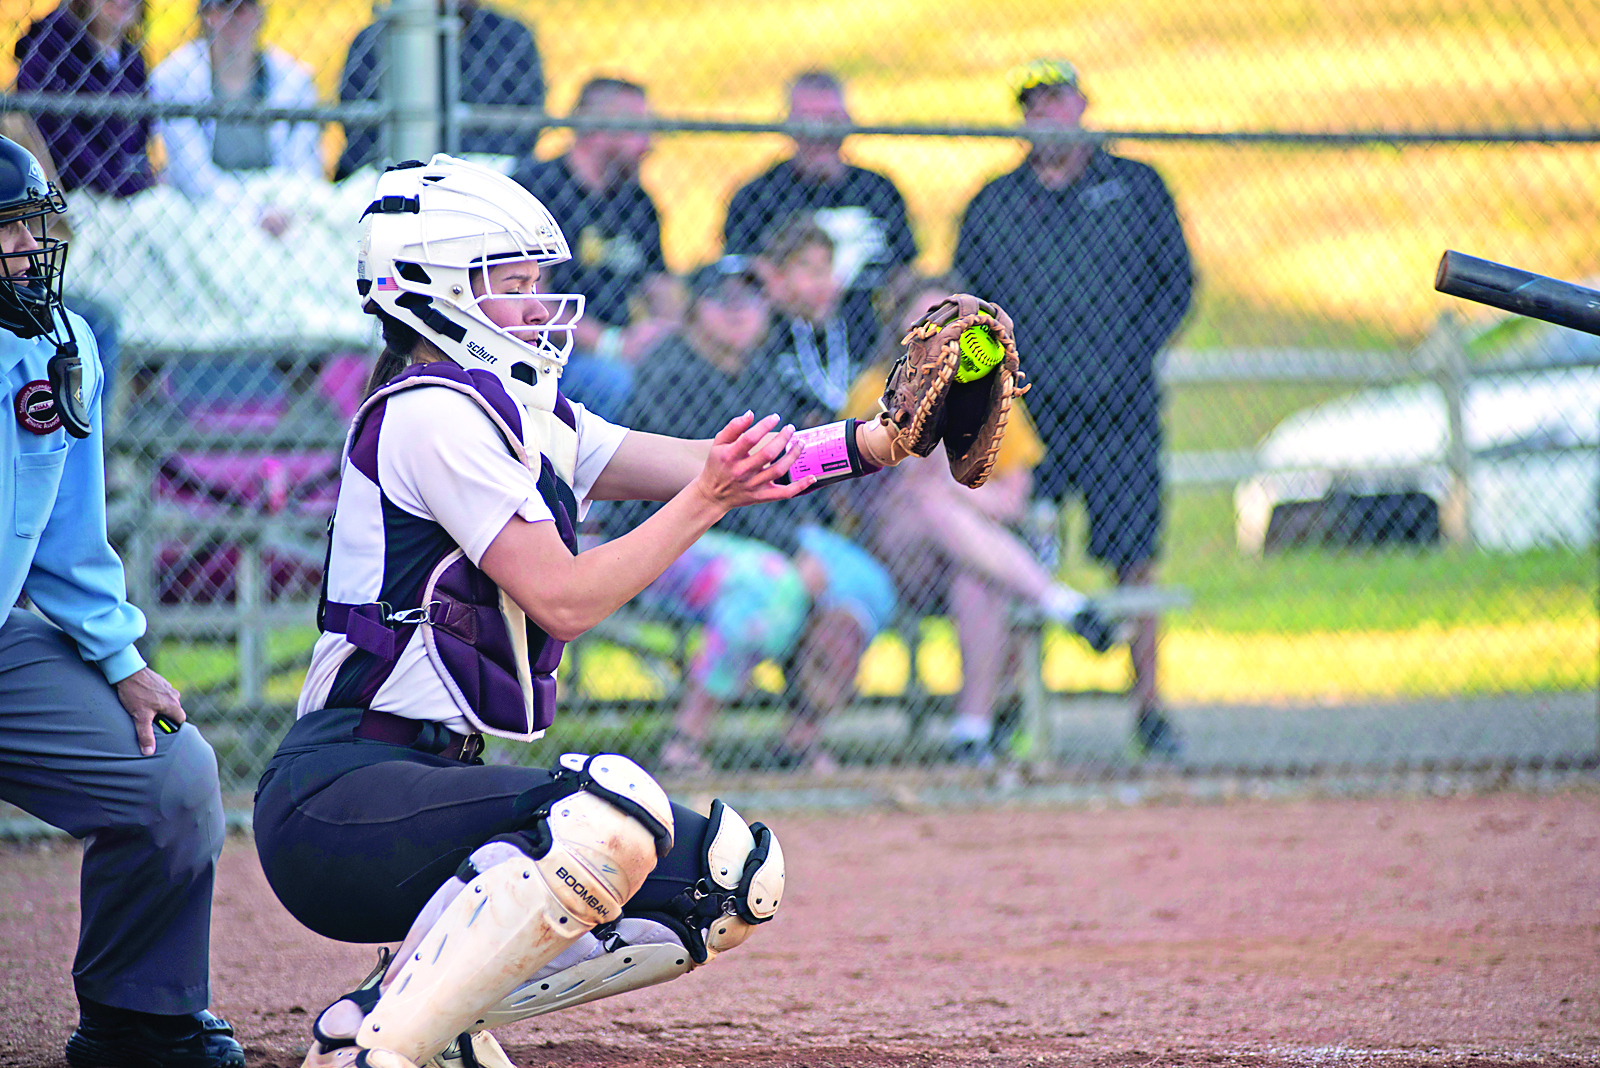 Emmy-Miller-catches-a-fast-ball-picthed-by-Hannah-FrittsCMYK